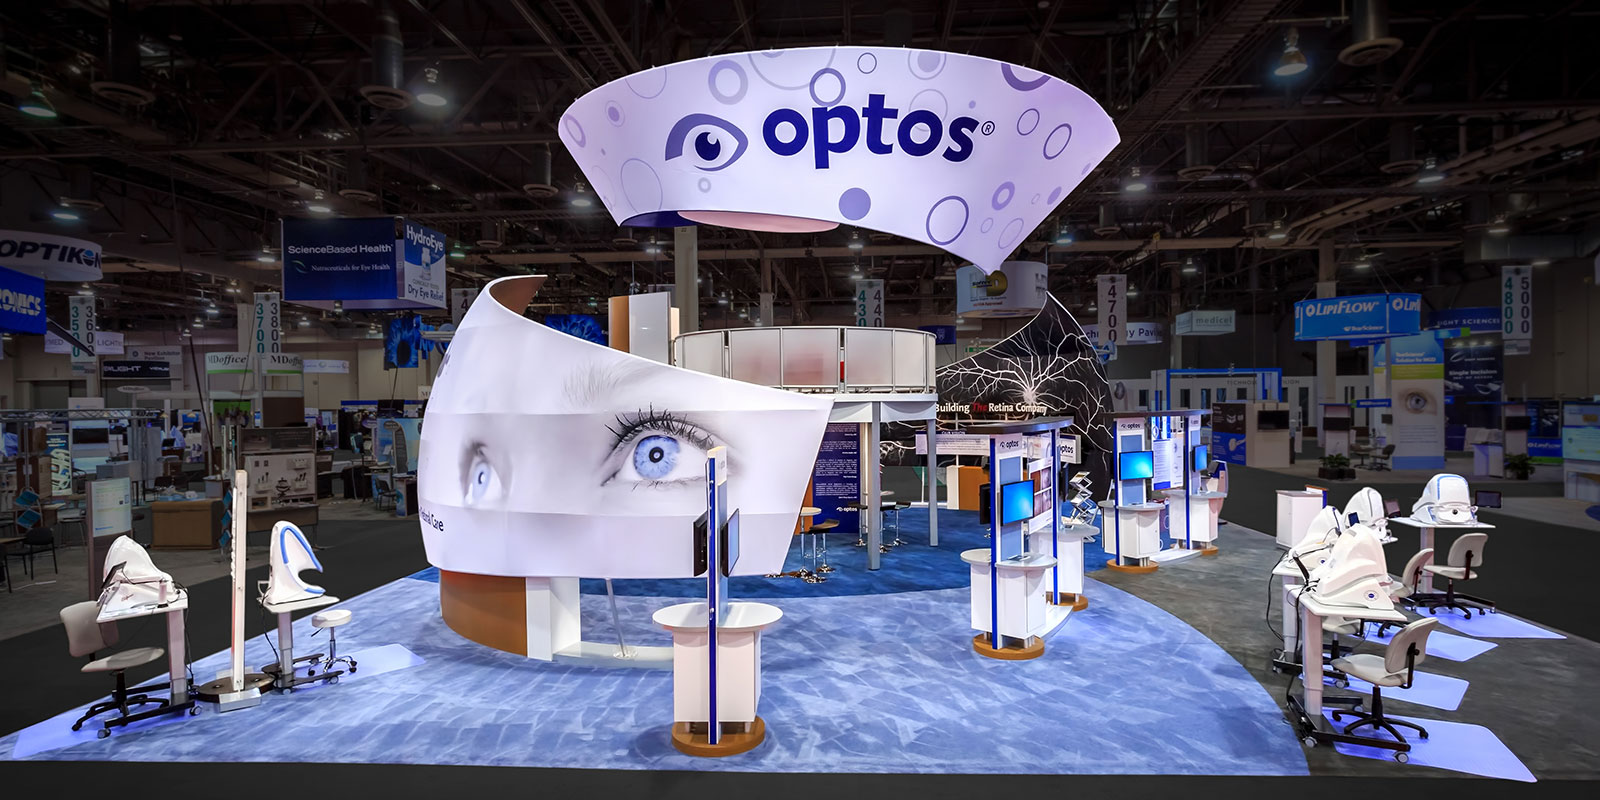 Hill & Partners Custom Branded Environment for Optos